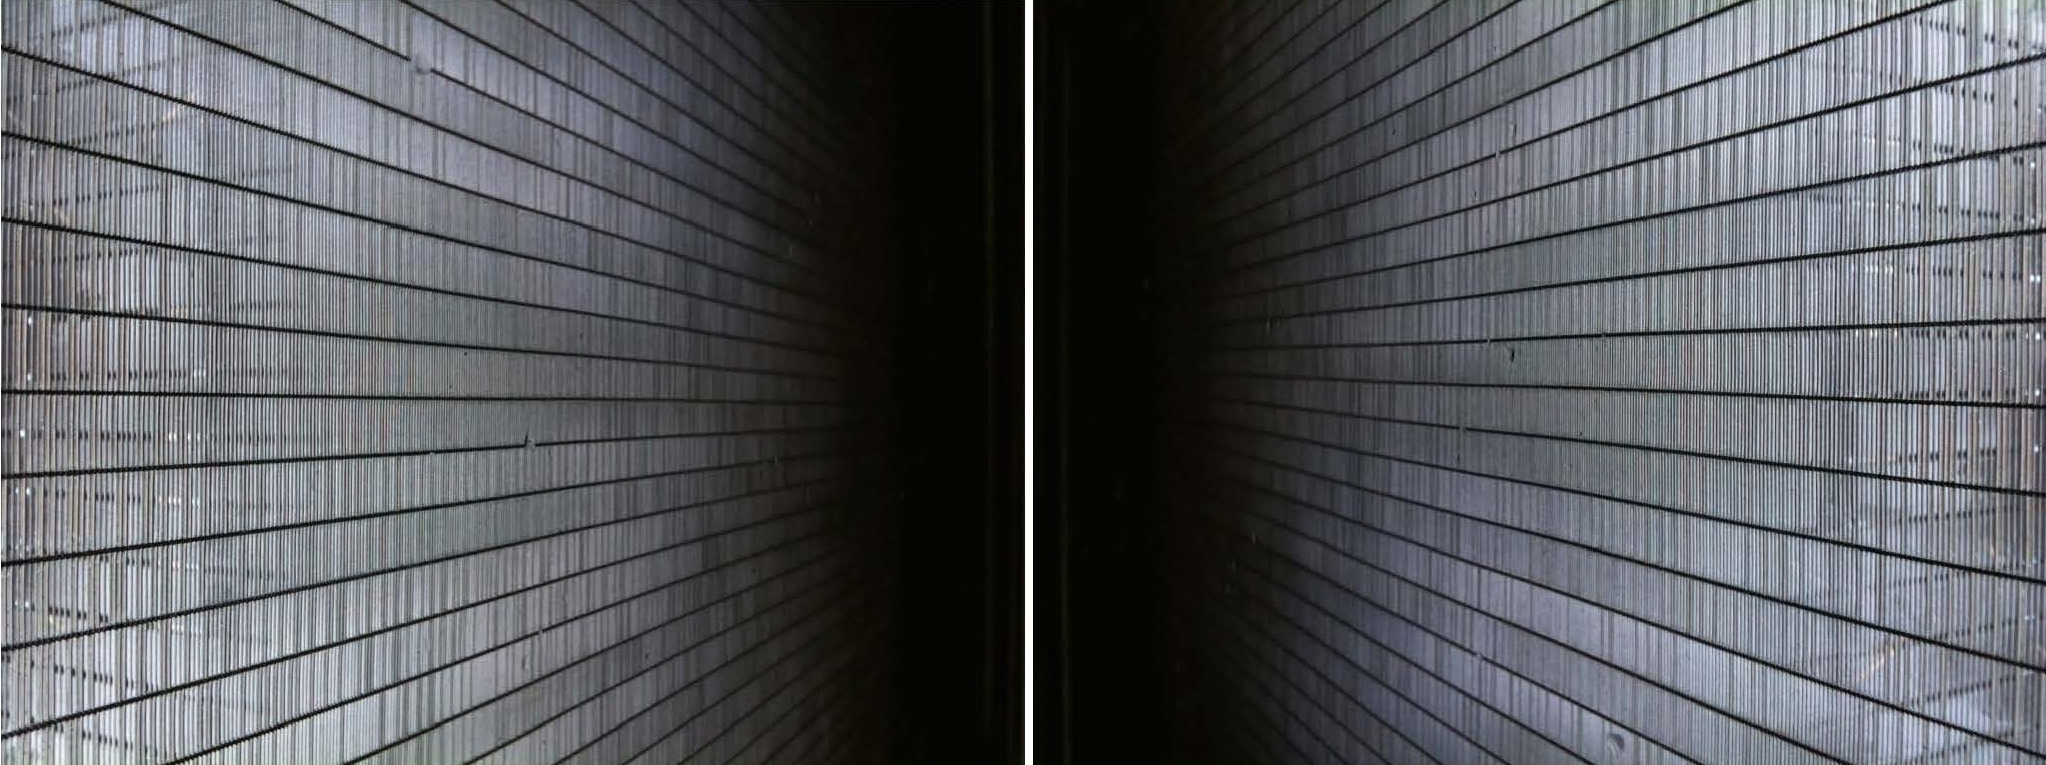 Untitled (CW 2), 2011   /archival pigment   print, 22.5  x 61   inches  ,  edition of 5 plus 2 AP